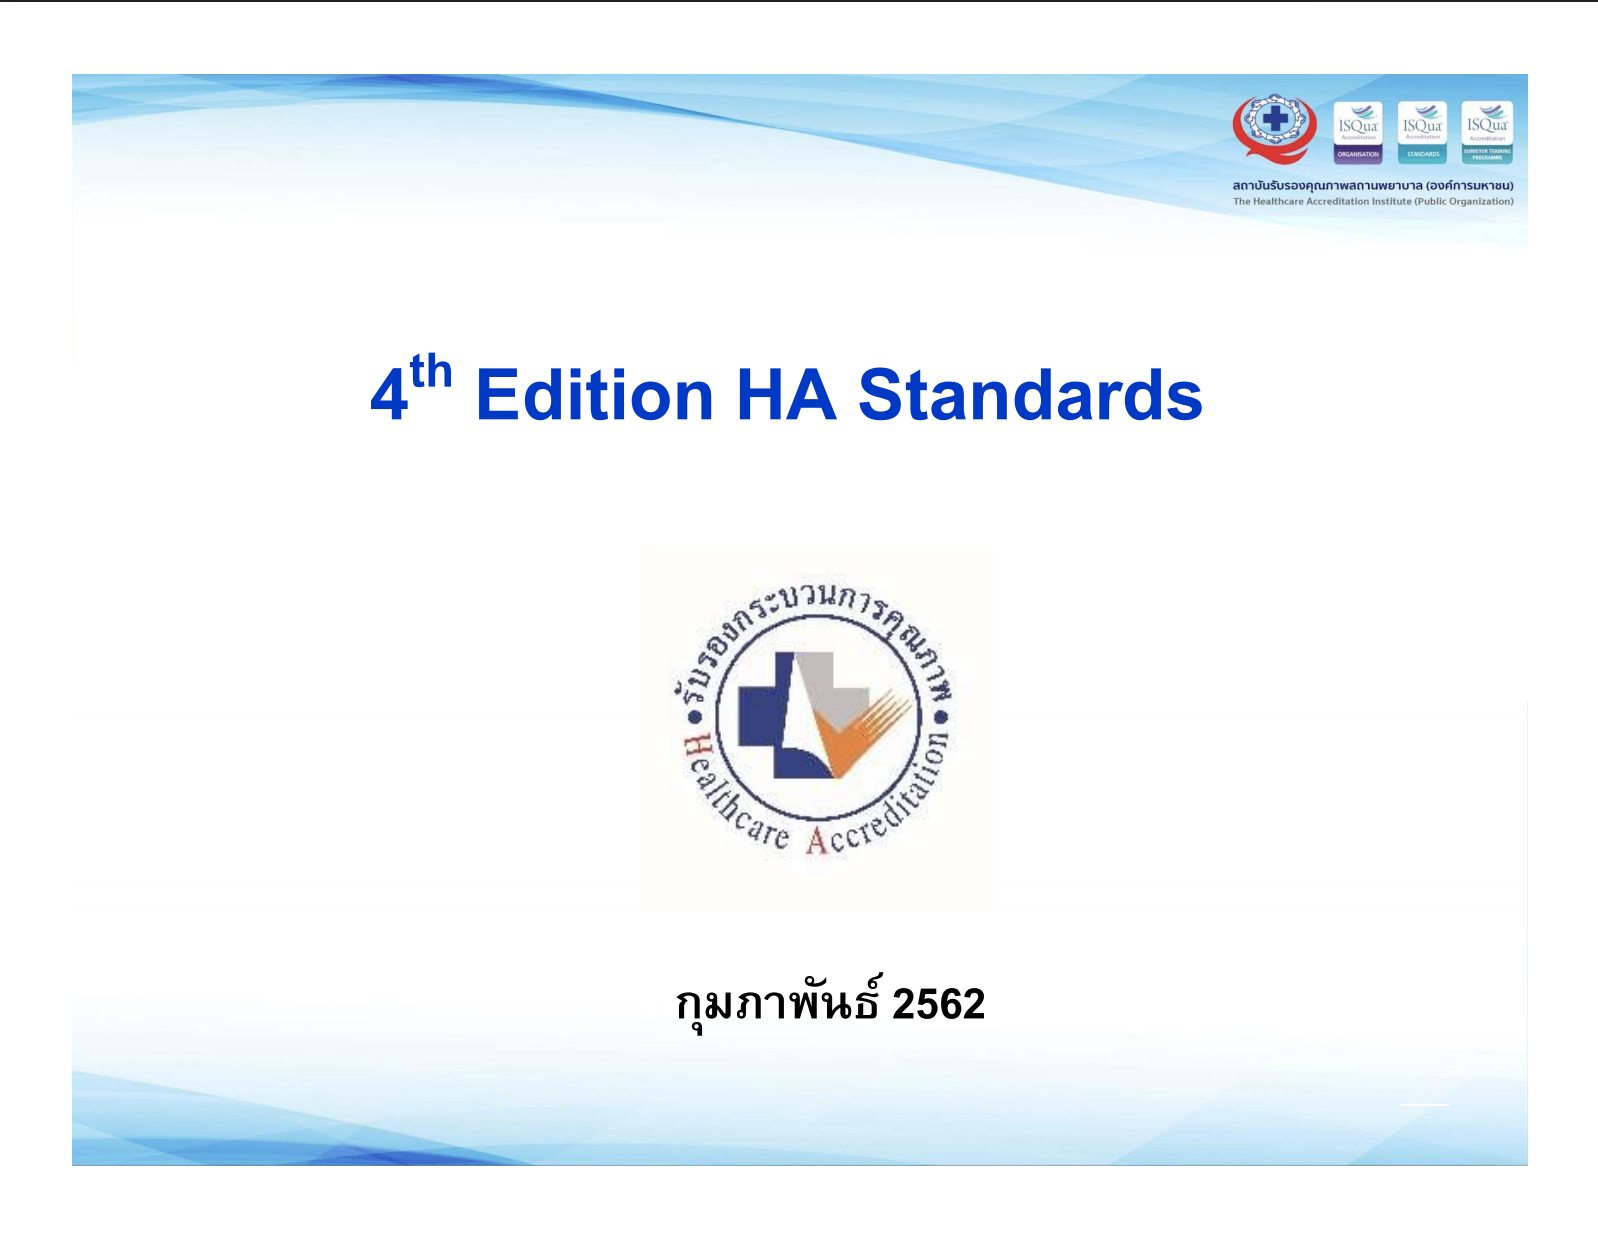 4th Edition HA Standard